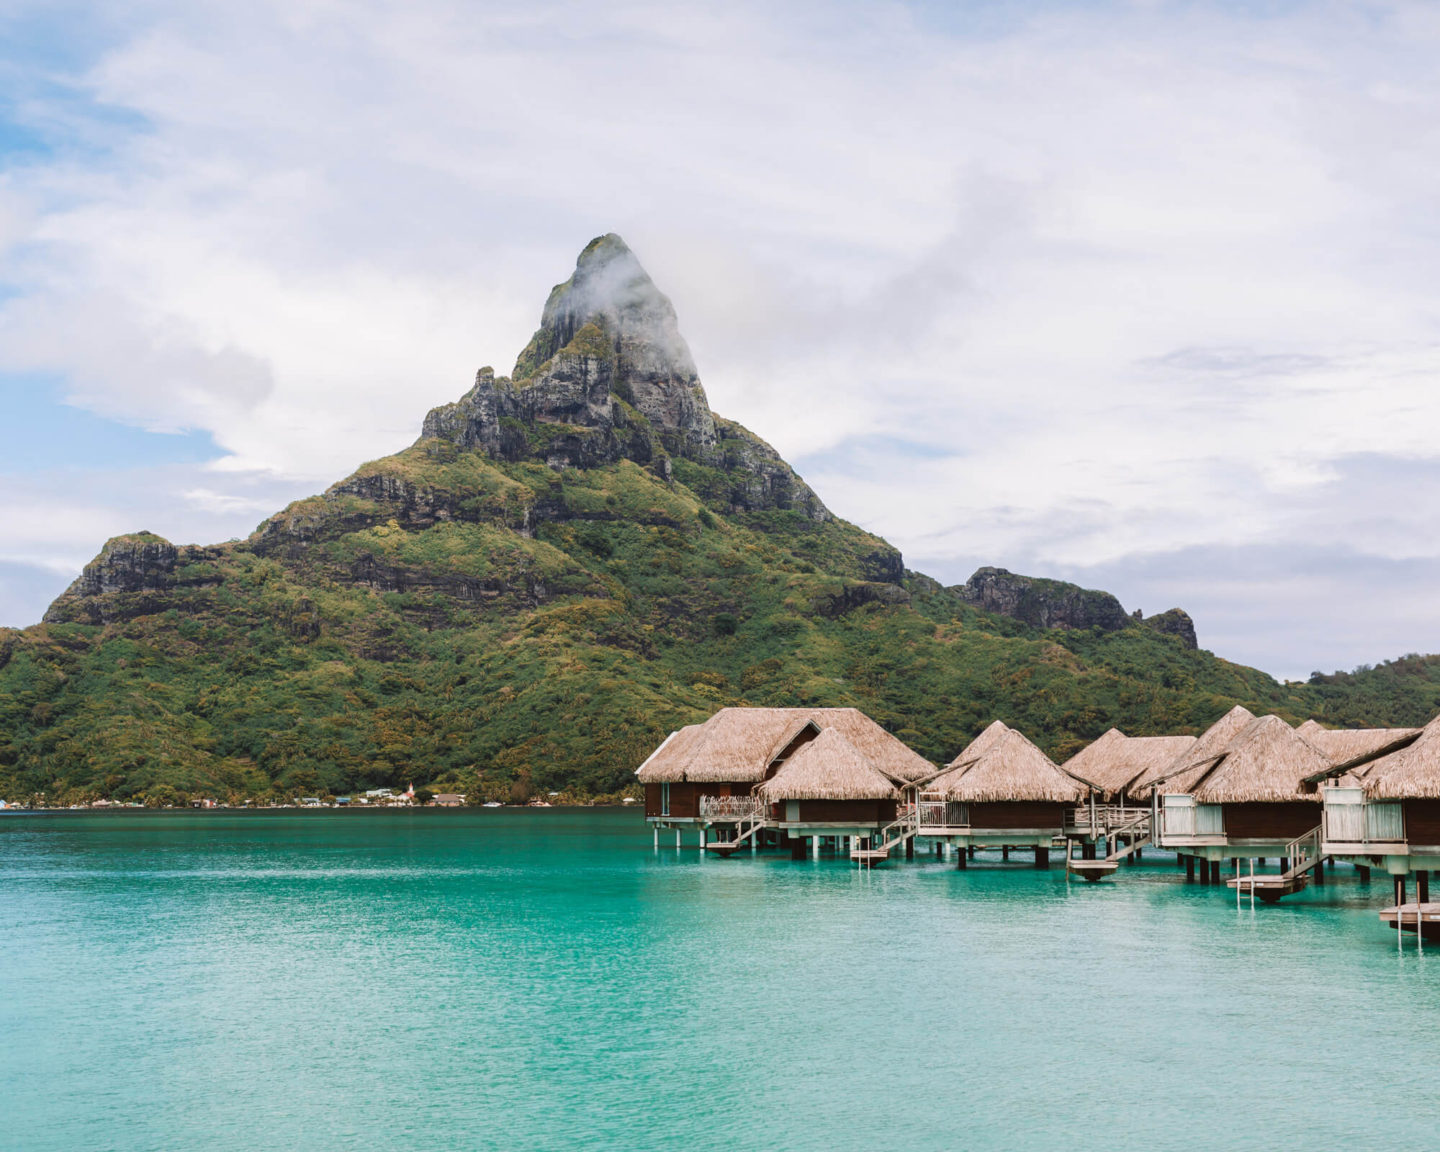 intercontinental thalasso resort's view of mount otemanu with overwater bungalows lining the bottom of the mountain on the right side